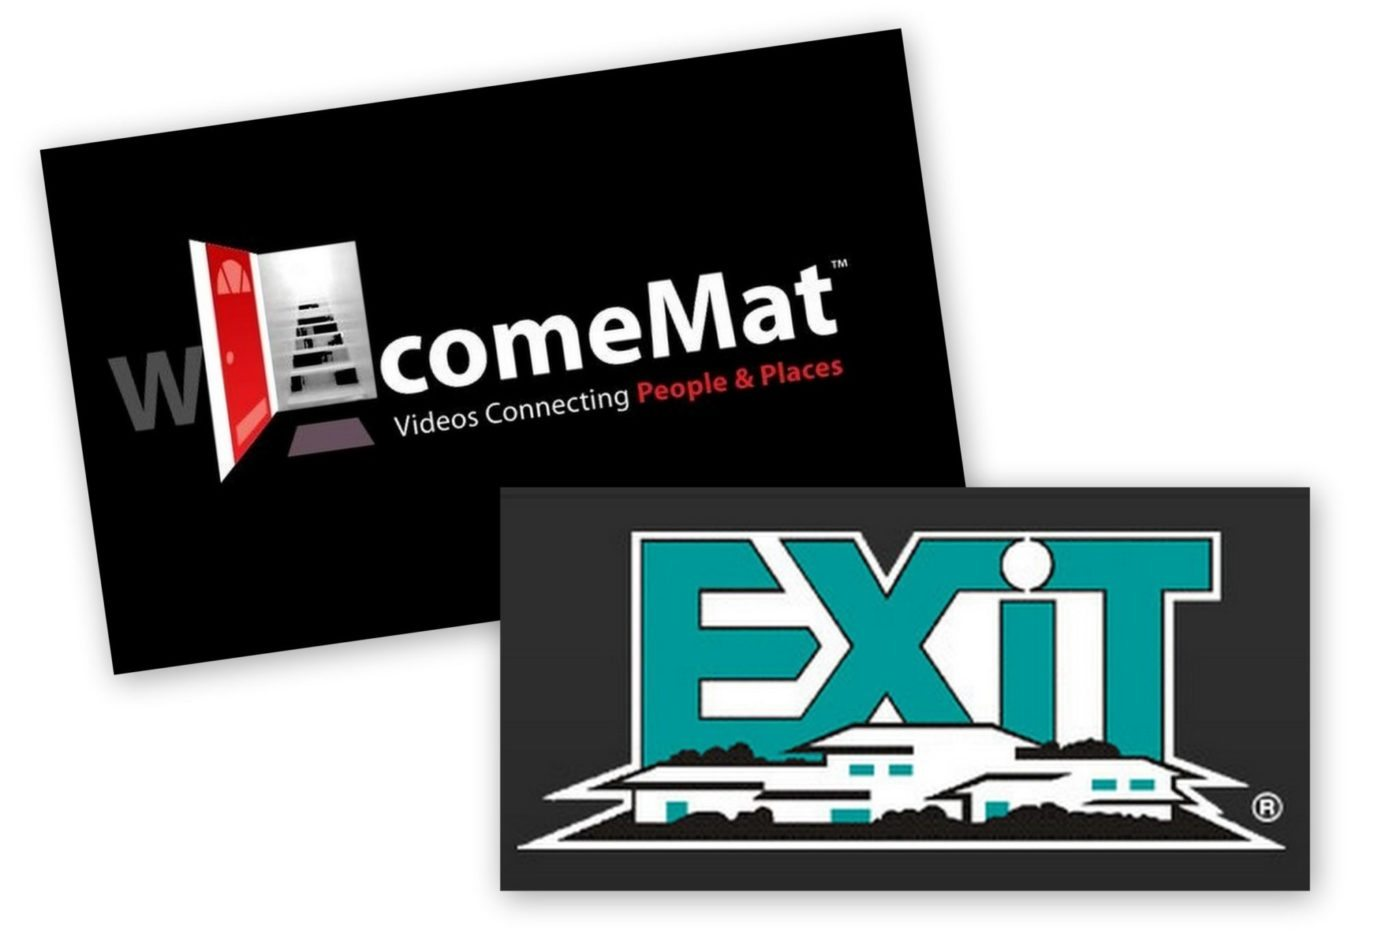 EXIT Realty agents get access to WellcomeMat video platform